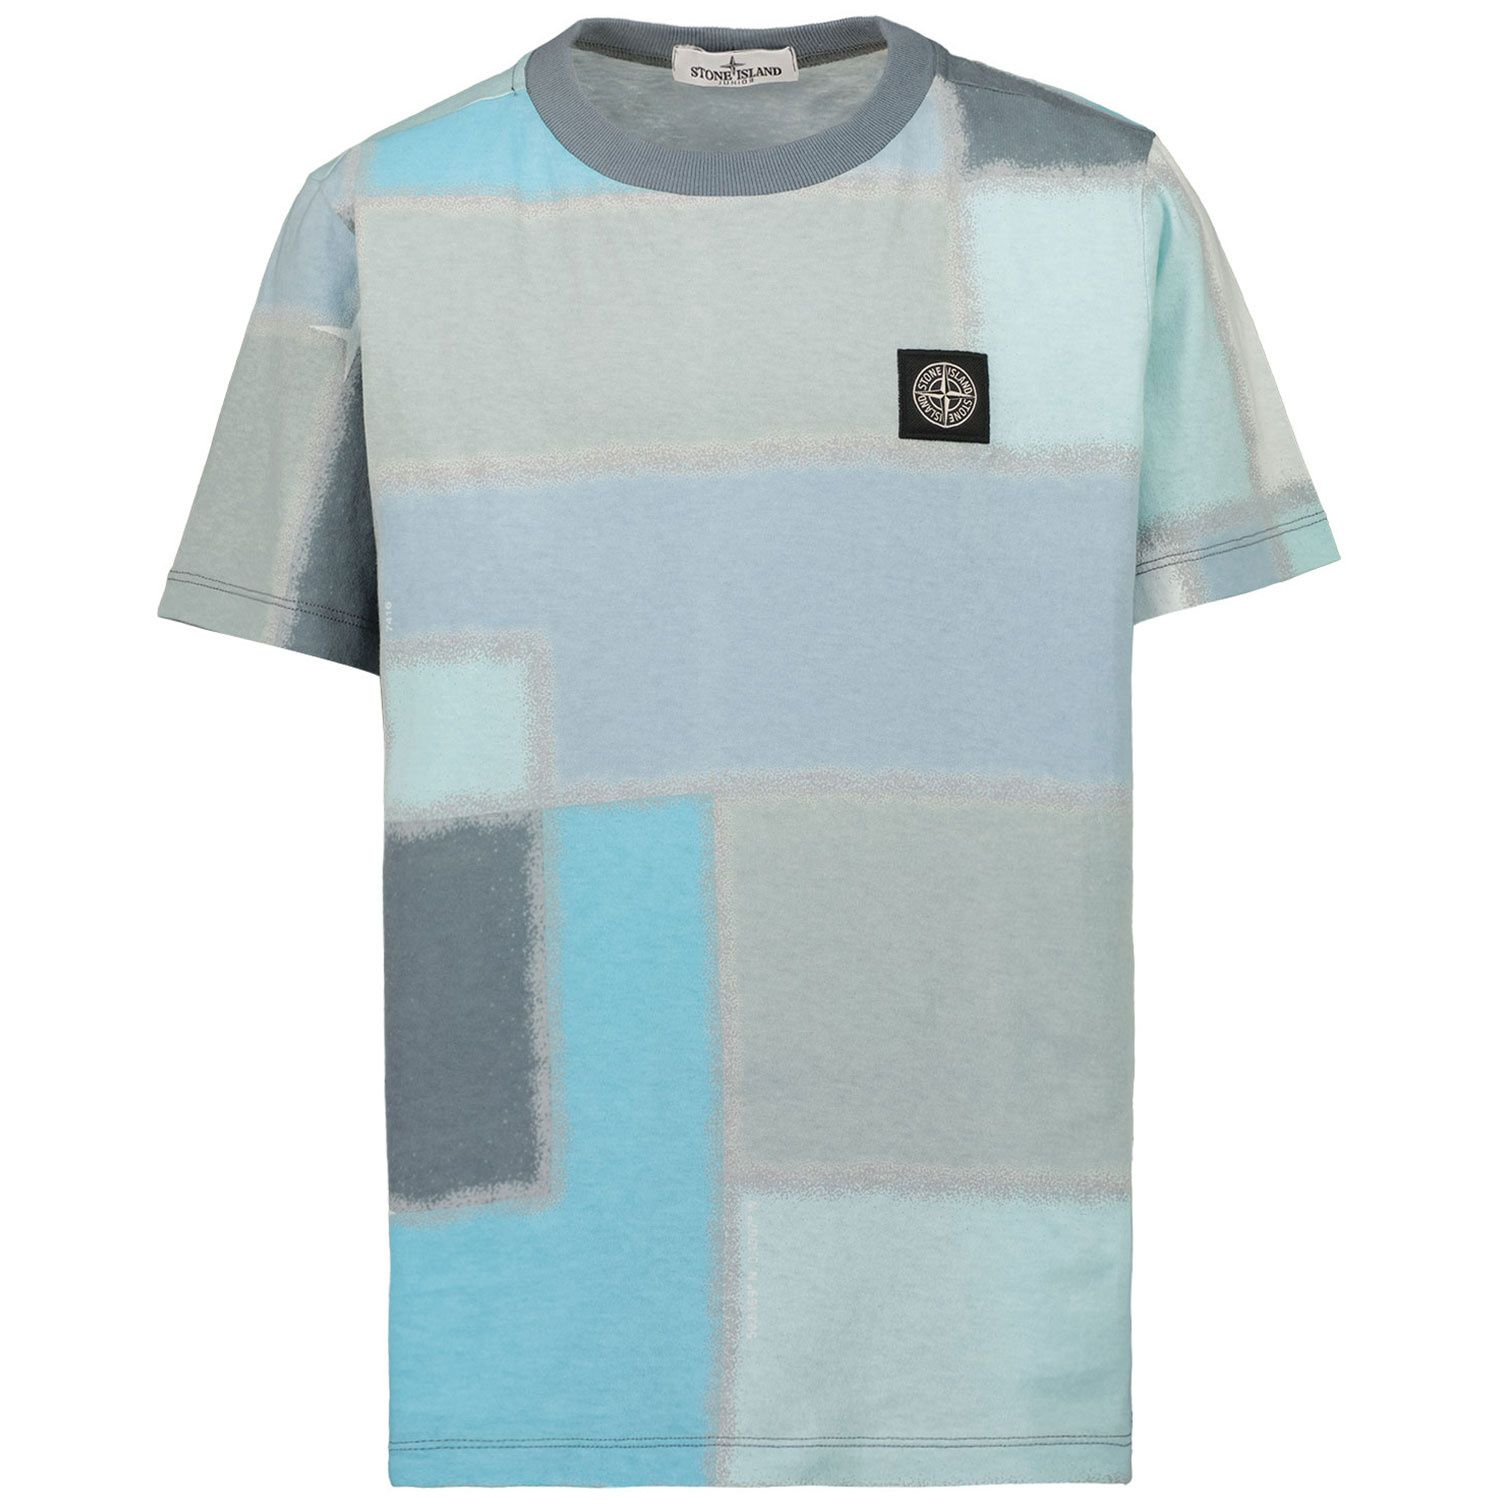 Picture of Stone Island 21446 kids t-shirt light blue